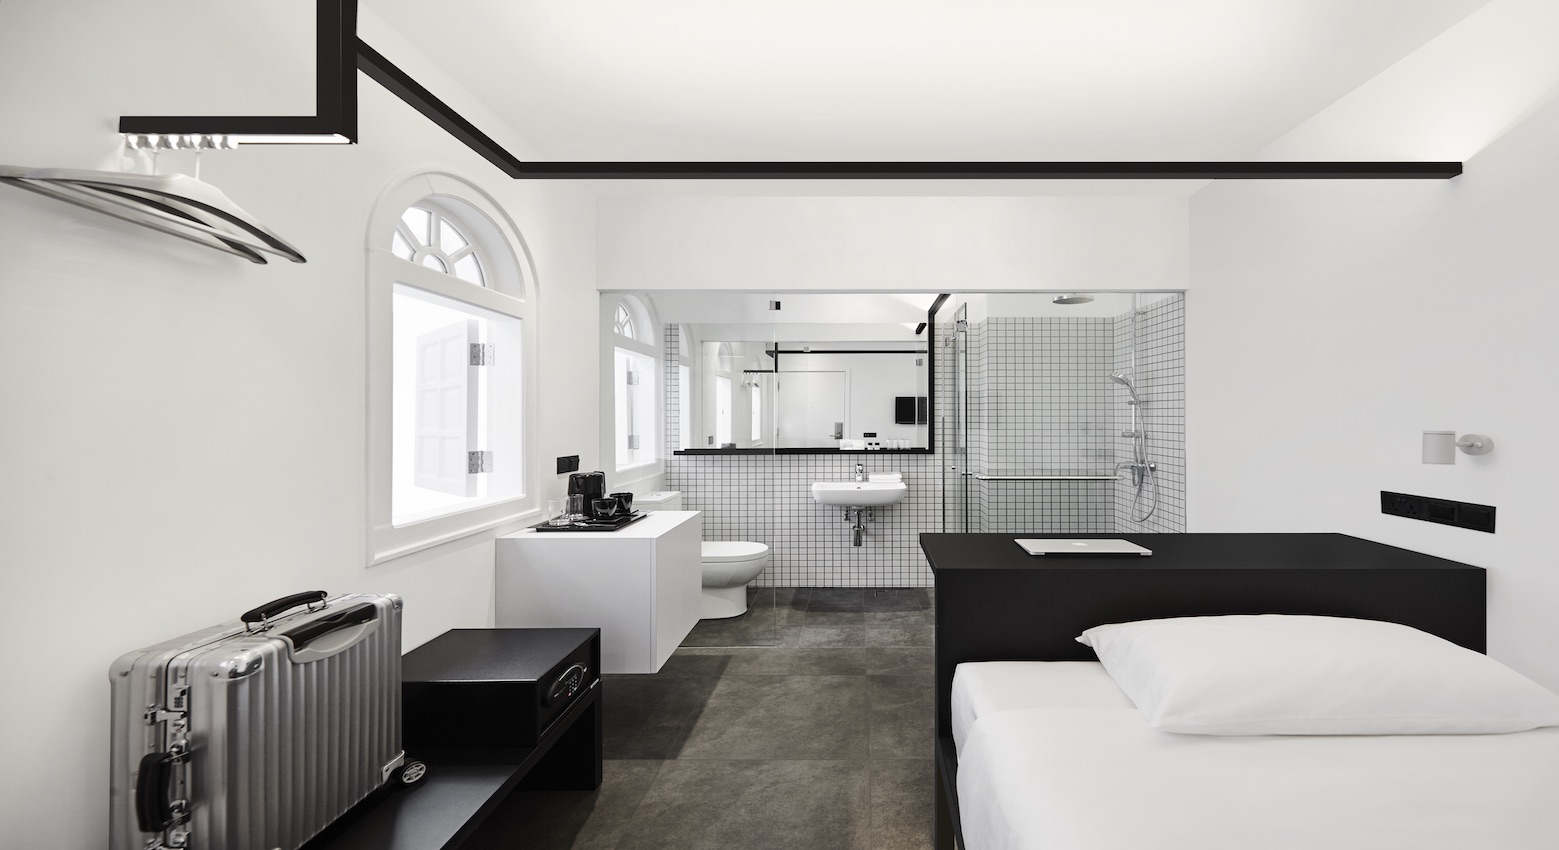 8 Minimalist Hotels that Will Satisfy Any OCD Staycation-er